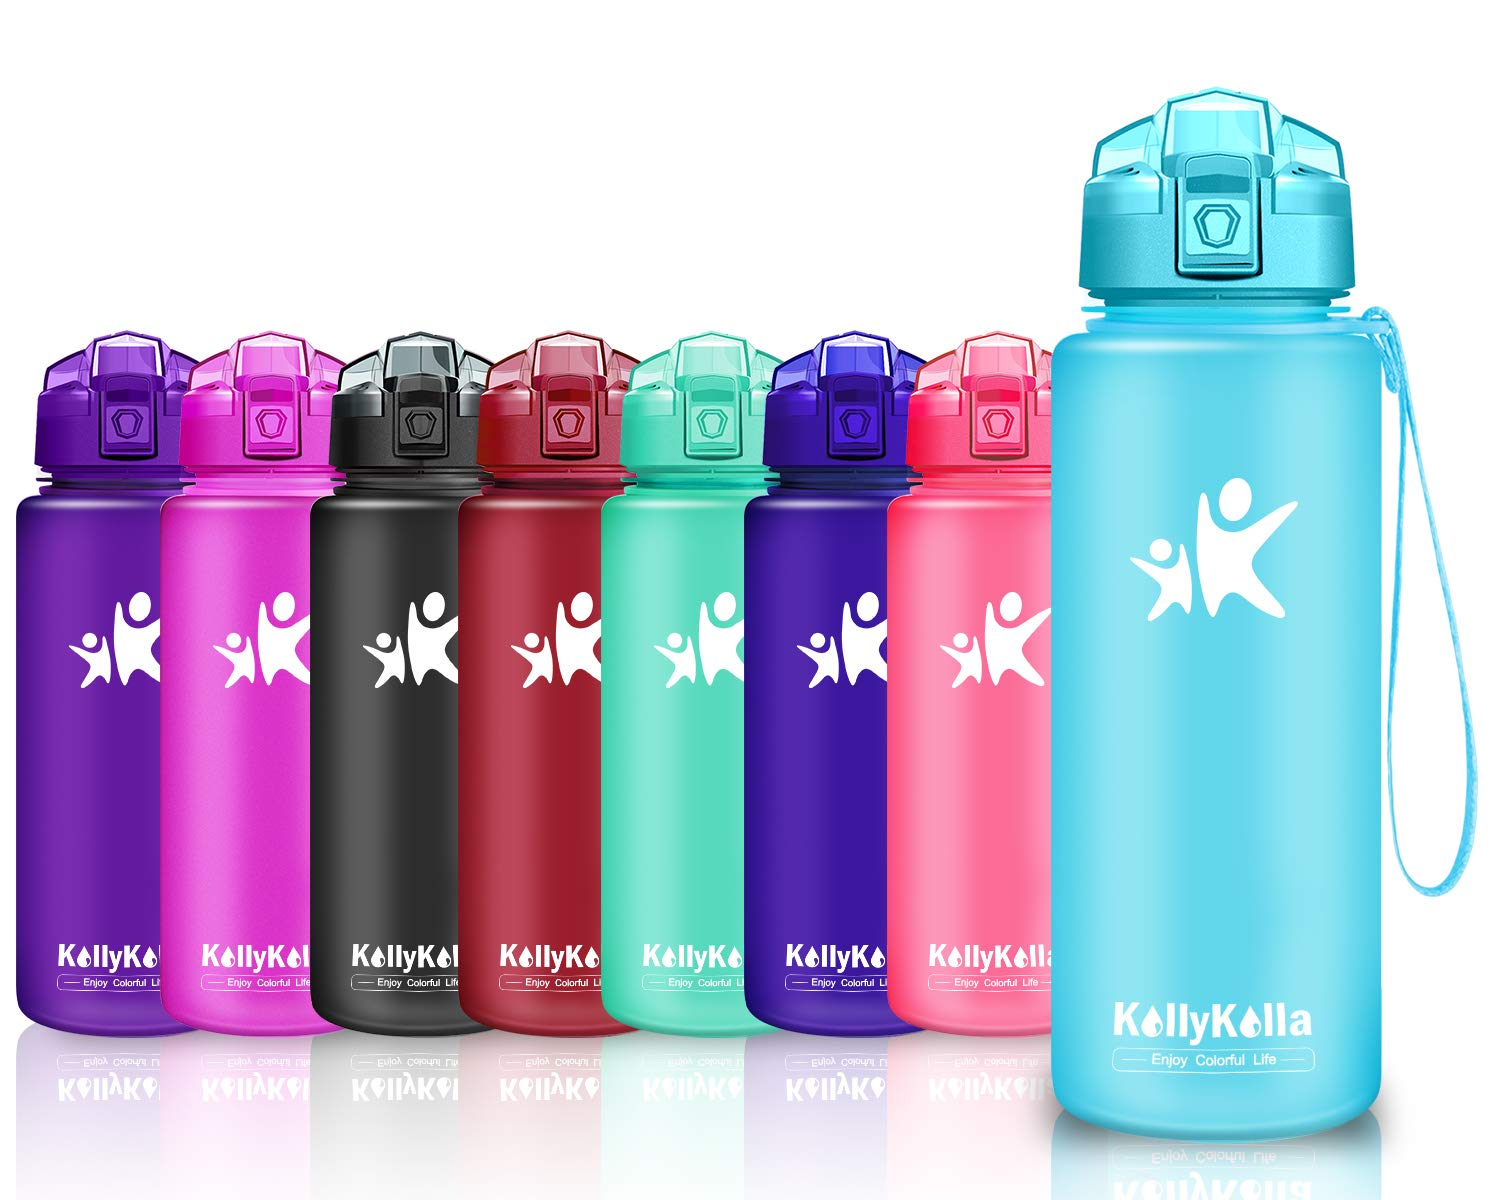 KollyKolla Sports Water Bottle 1 L//32 oz,25 oz,17 oz Large BPA Free Reusable Water Bottle with Time Marker,Kids//Adults Leakproof Drink Bottle with Flip Top Lid for Fitness Workout Gym Bike Running